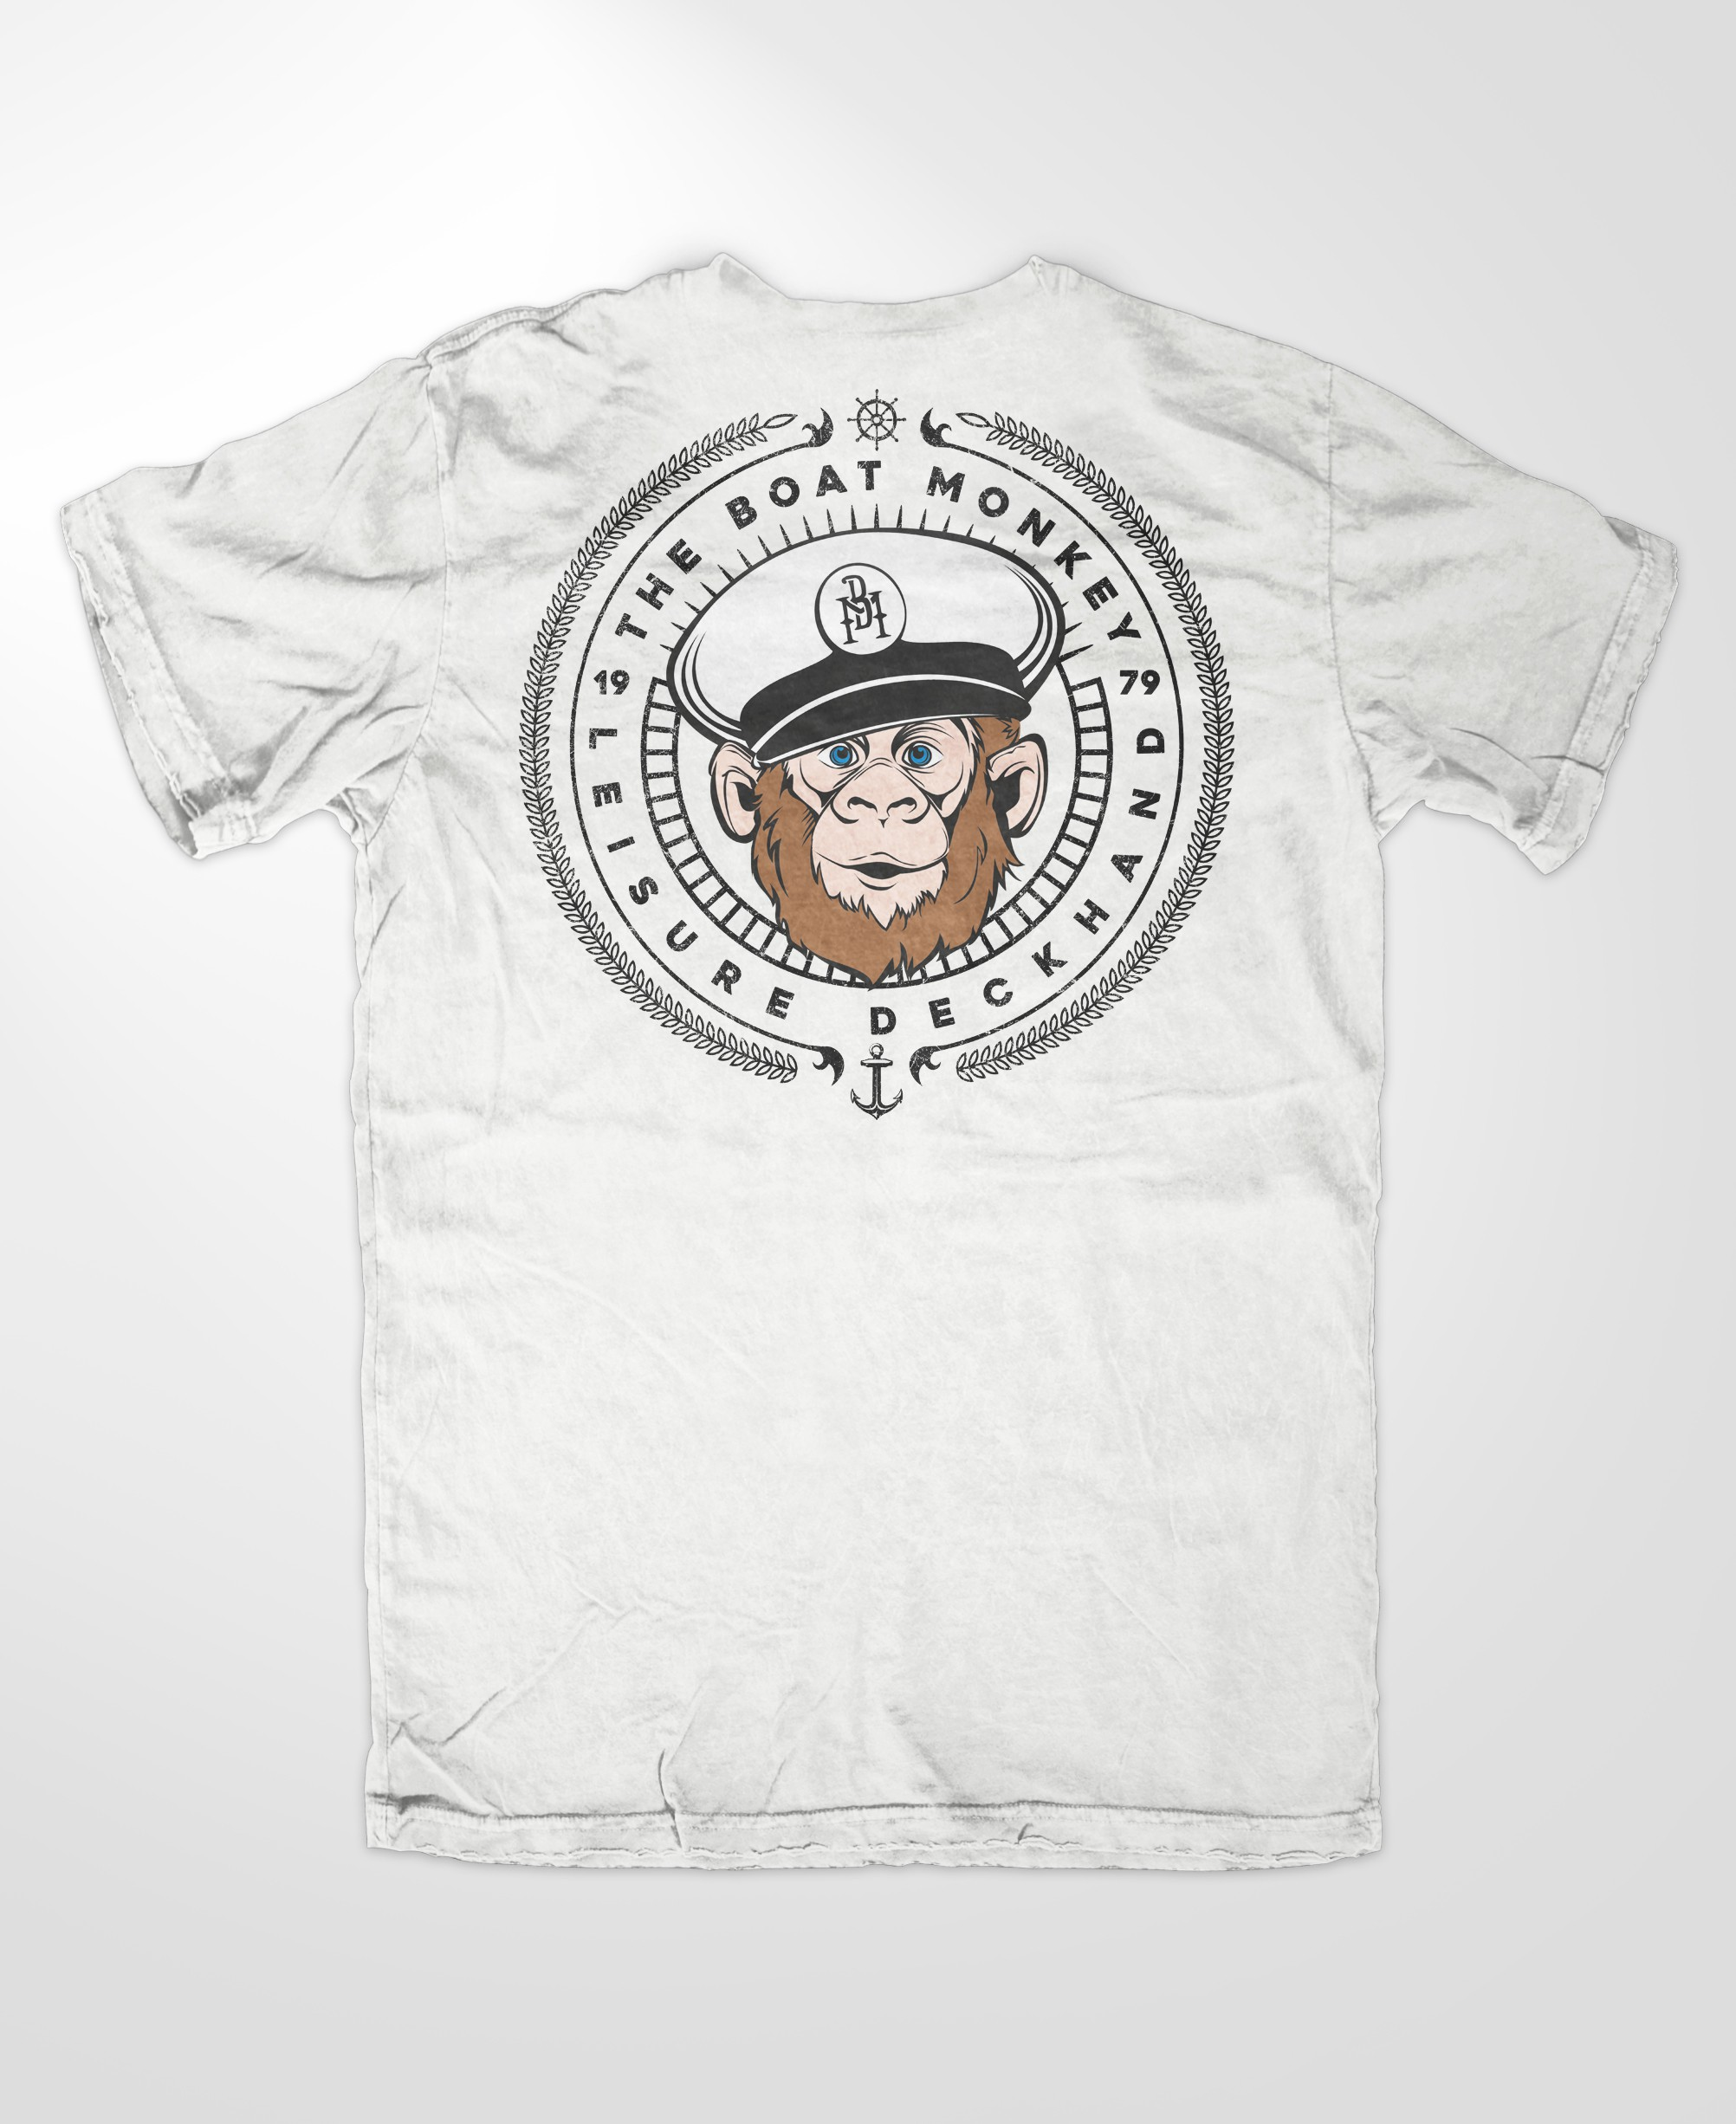 Design for clothing - t-Shirt